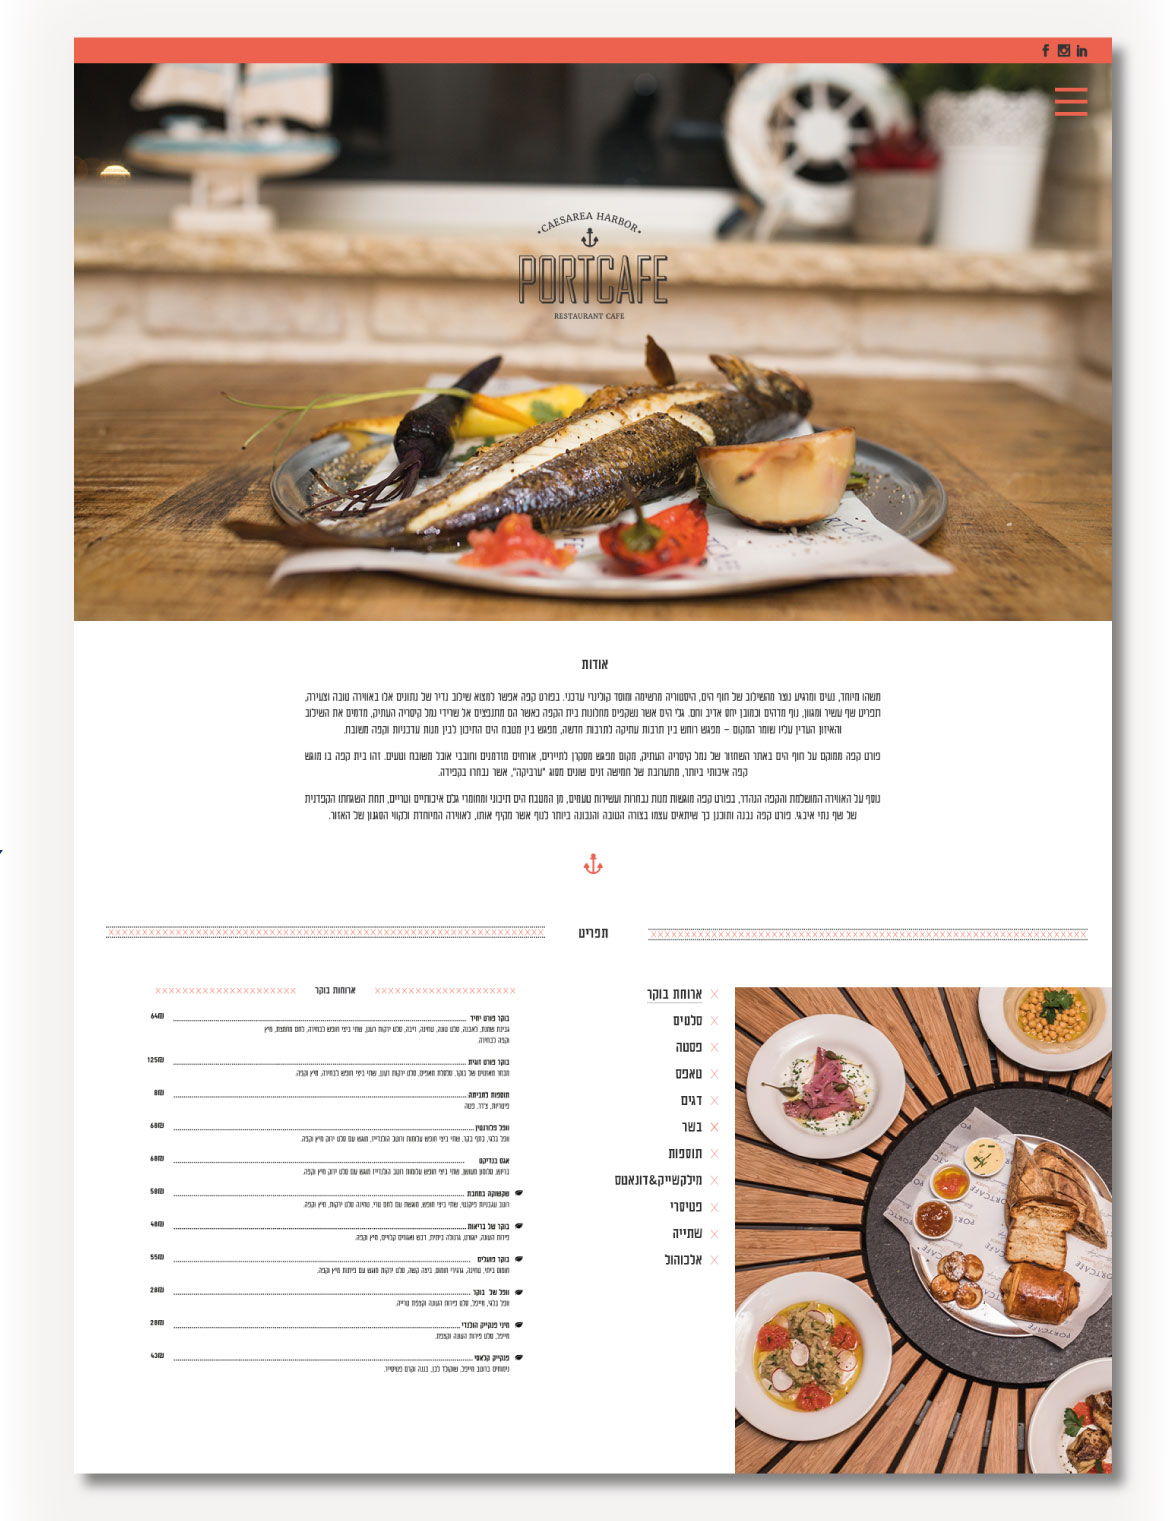 NFH_Port_Cafe_Branding_webdesign